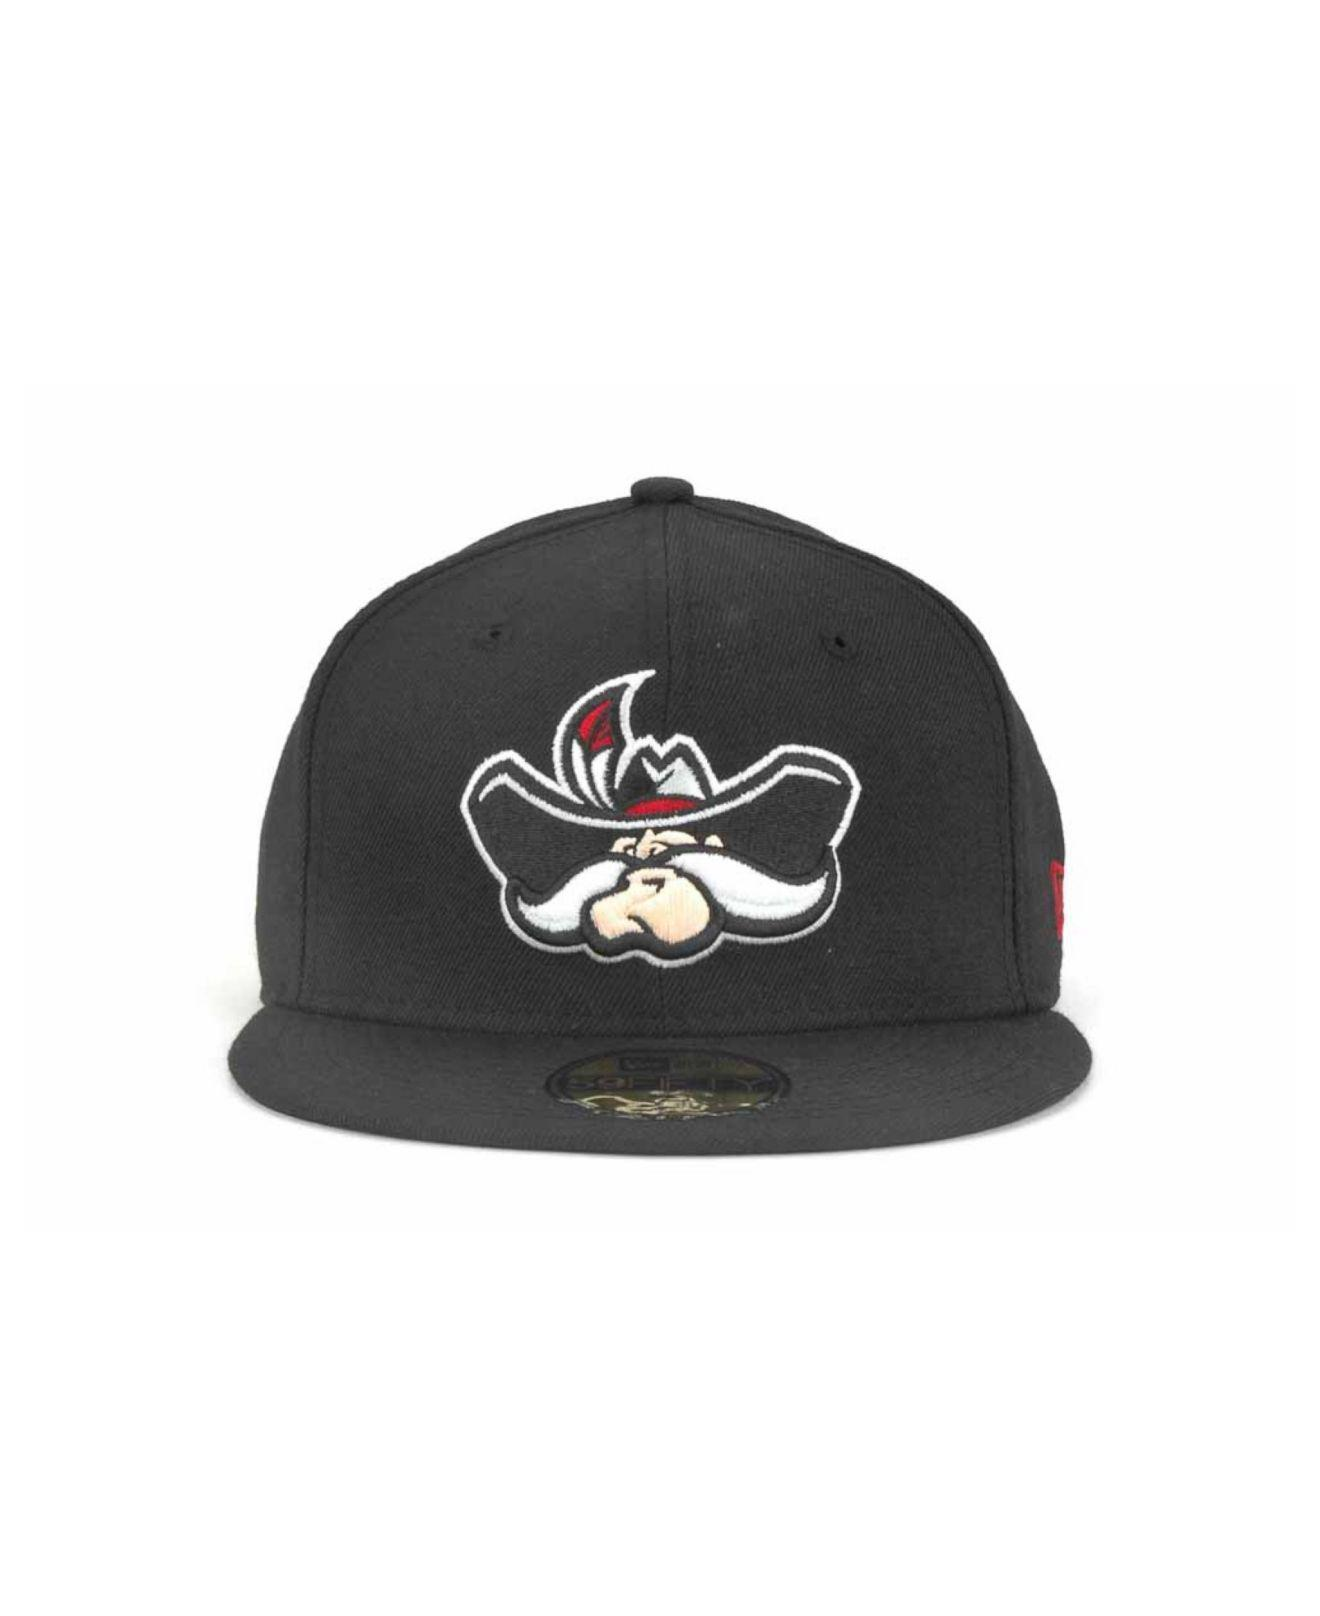 huge discount d5cbd 2cb4c ... inexpensive lyst ktz unlv runnin rebels ncaa ac 59fifty cap in black for  men 5020e e1ac1 canada washington state cougars ...